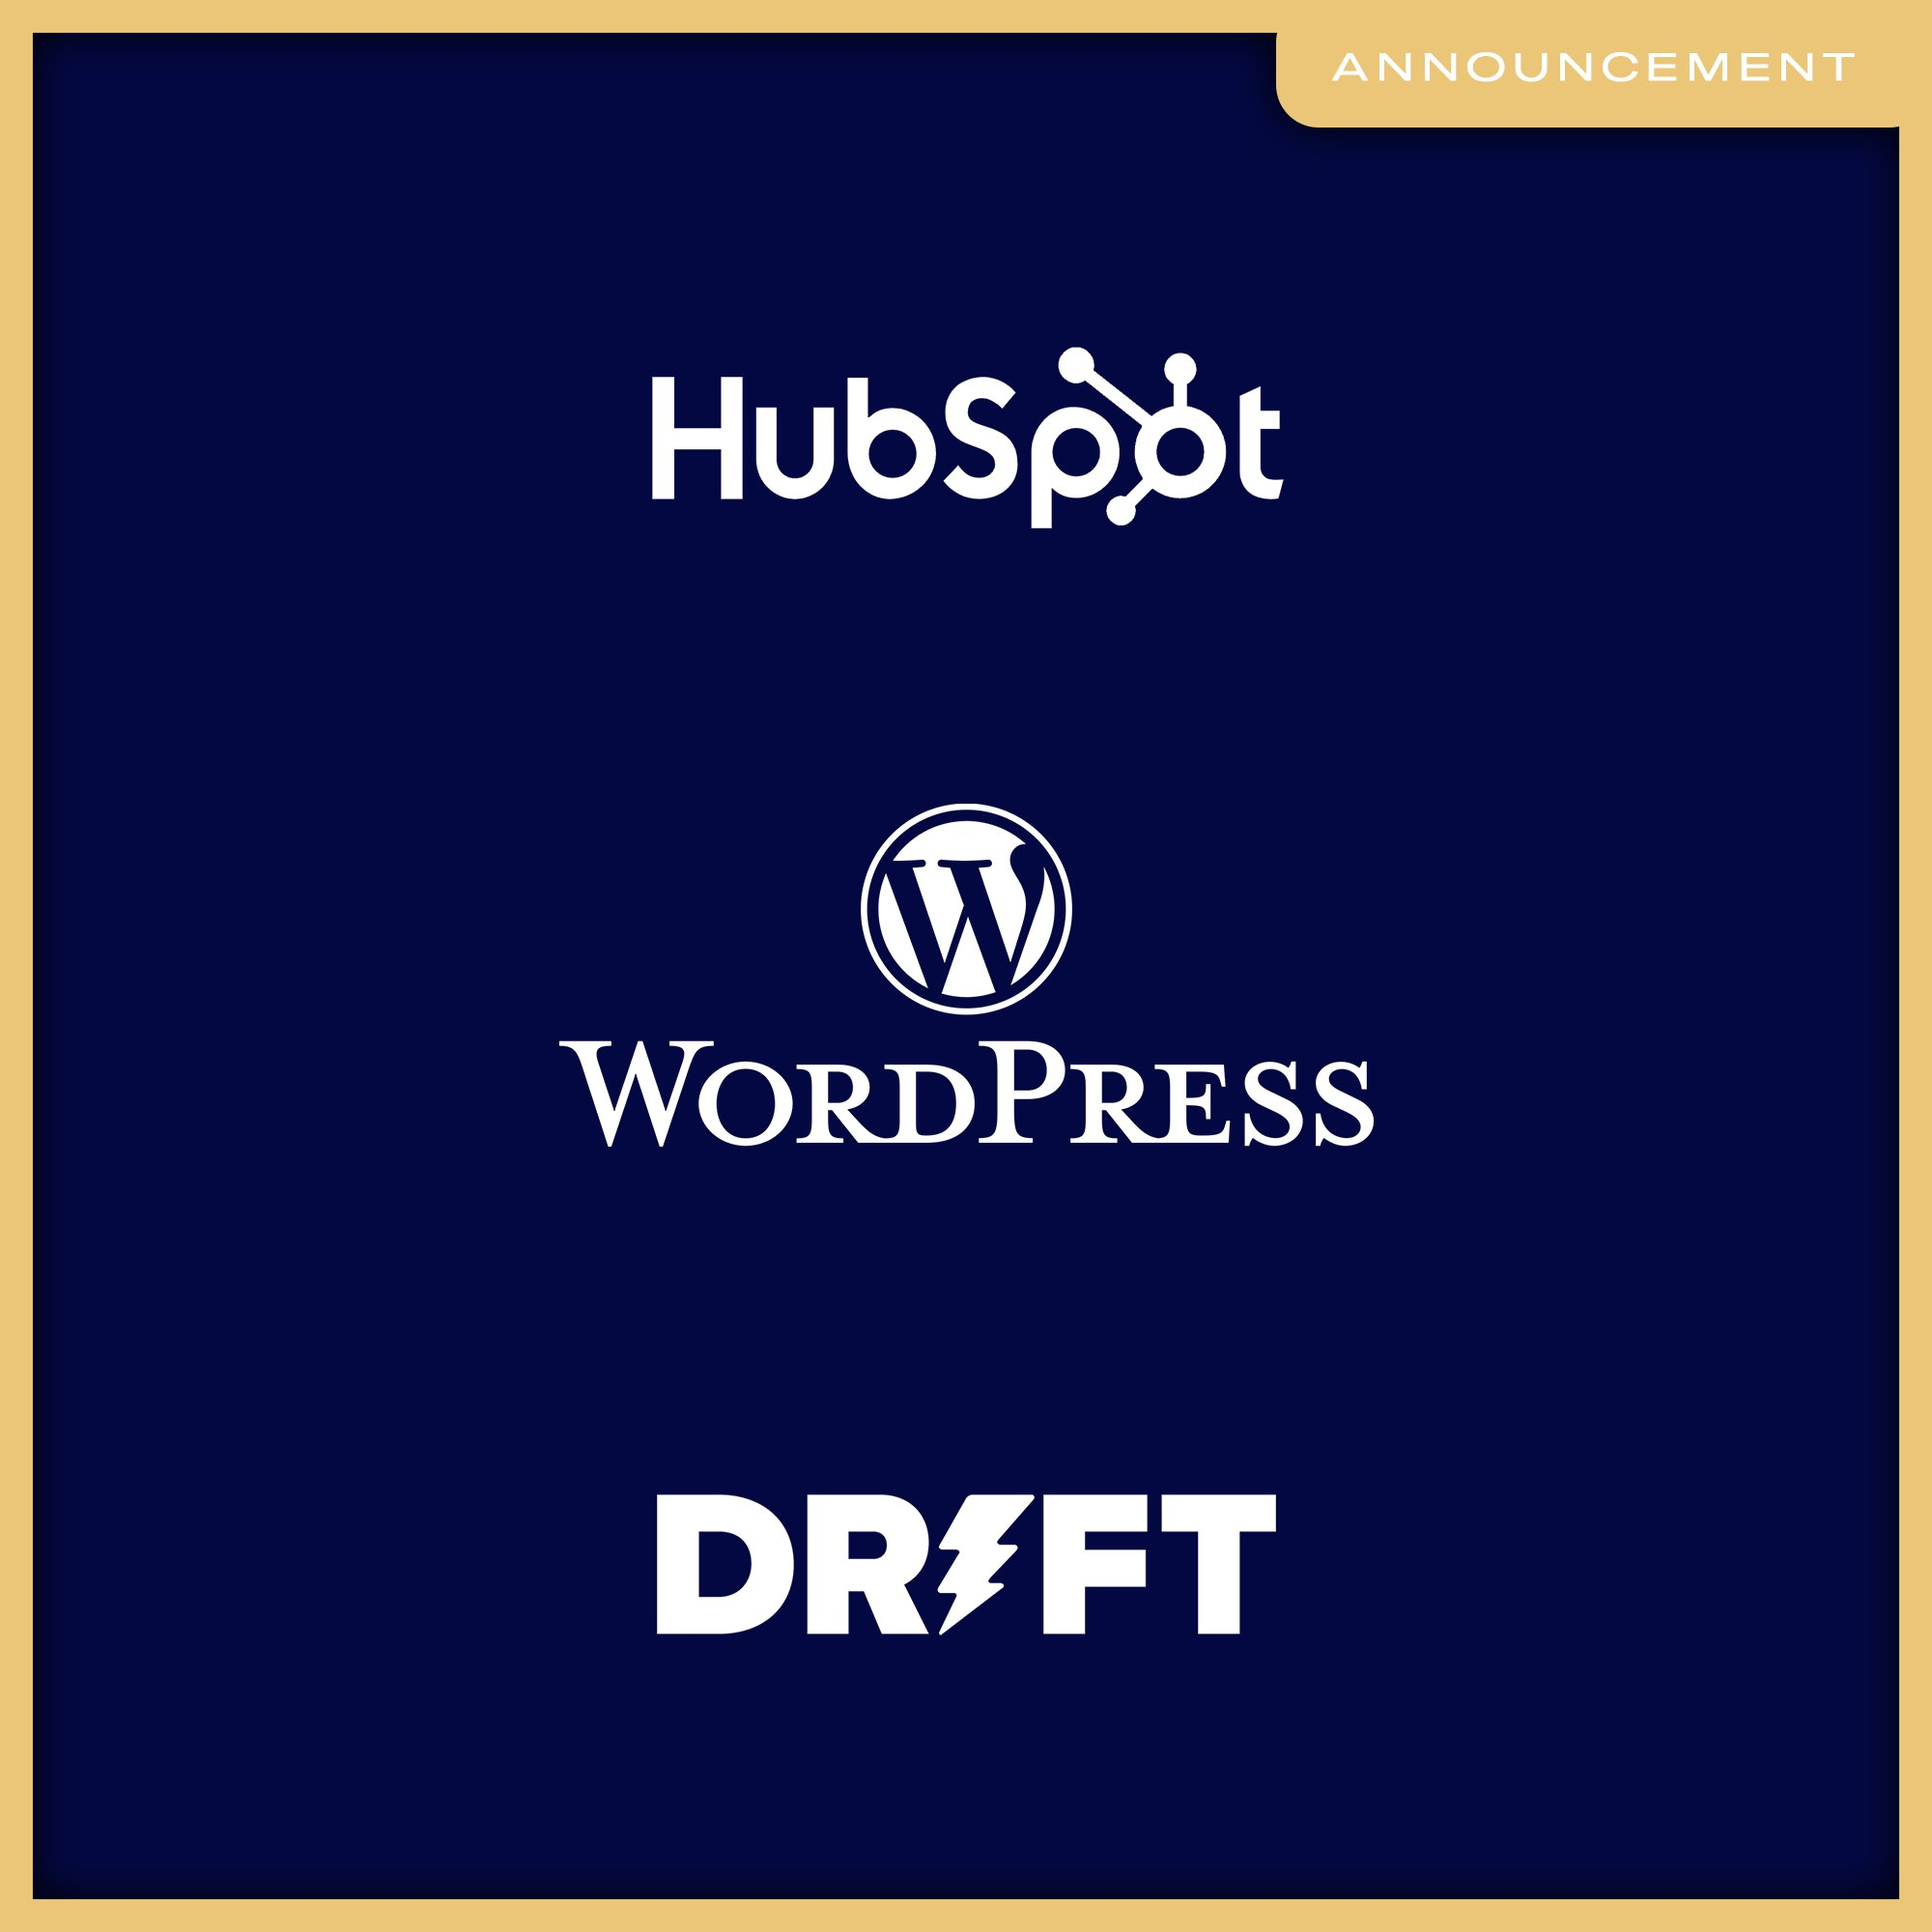 05-Announcement--Casted-Collaborates-with-HubSpot,-WordPress,-and-Drift-to-Further-Facilitate-Conversations-and-Conversions-